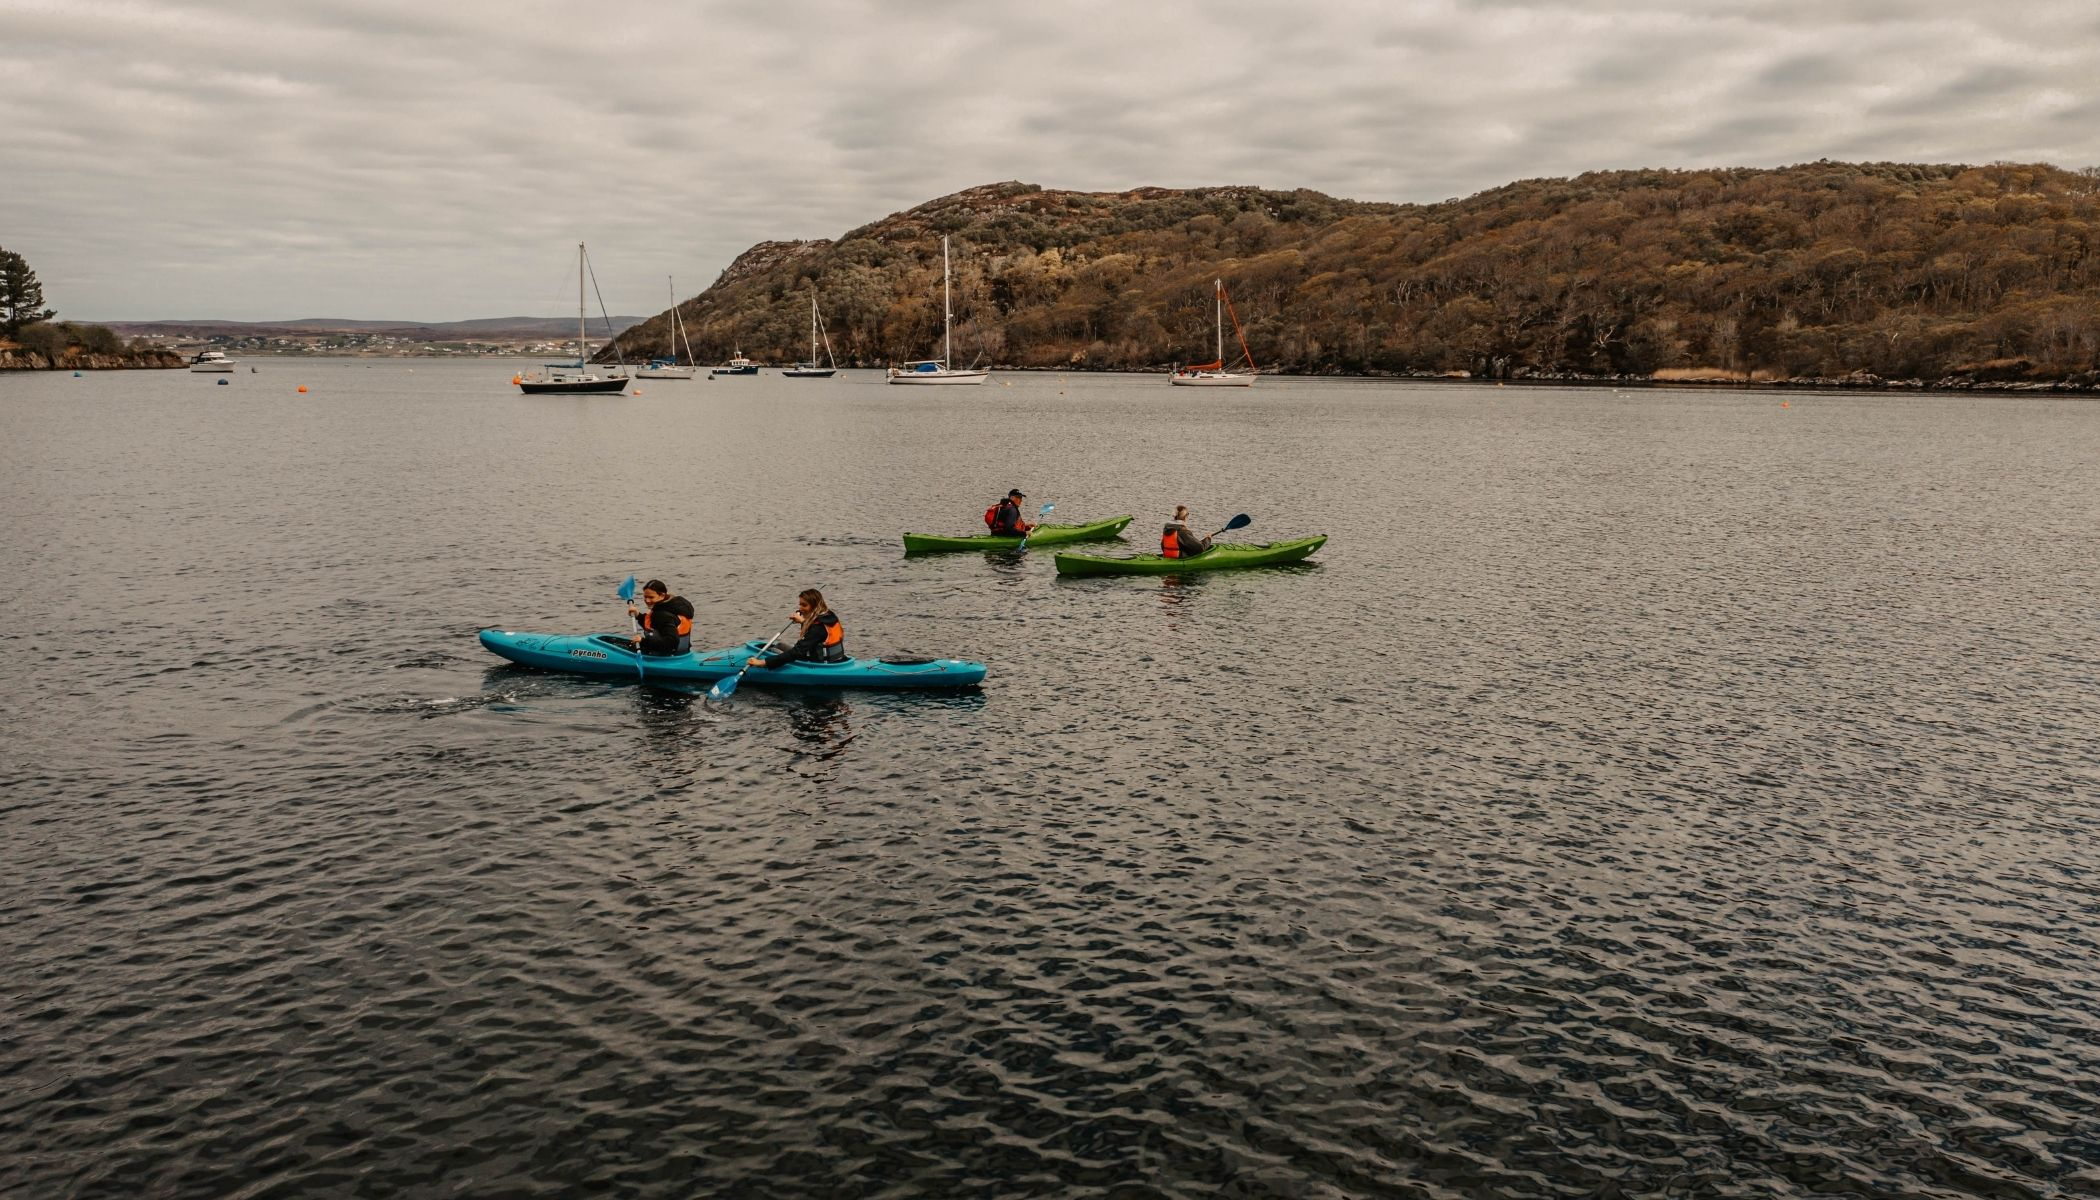 Kayaking on the Loch